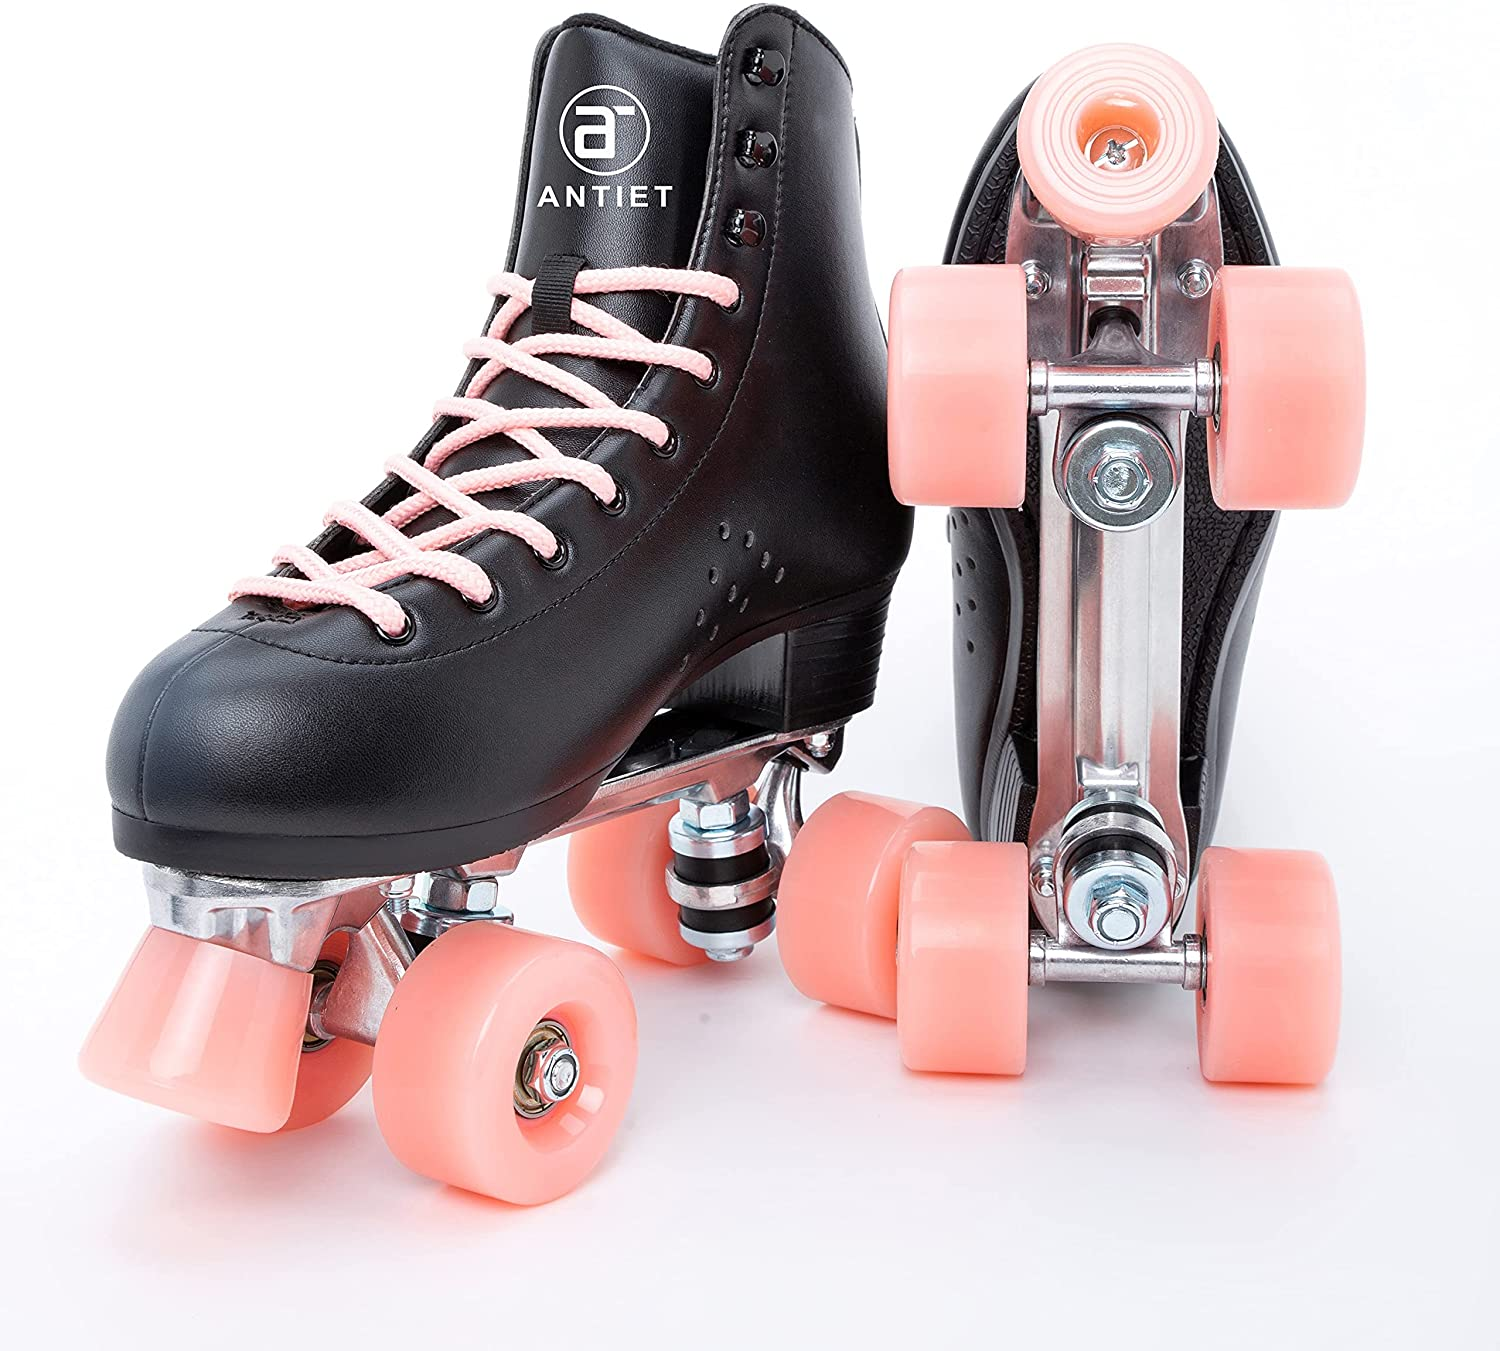 ANTIET Classic Roller Skates for Women Aluminum Alloy Base PU Leather Four Wheels Roller Derby Skates for Kids and Adults